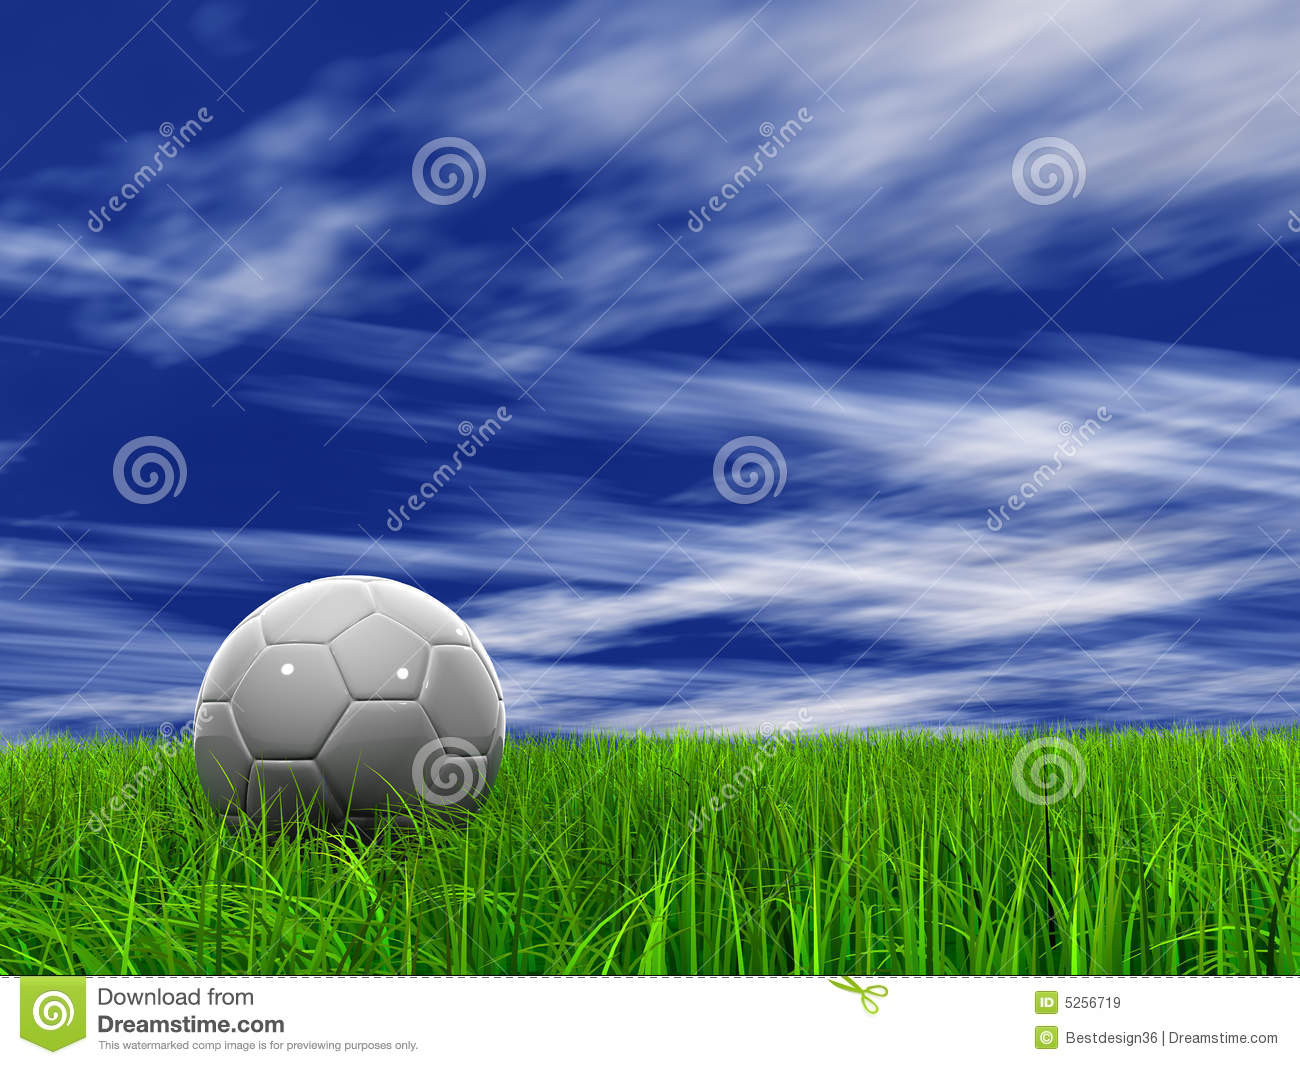 001 a grass at 9000 and sky 008 a royalty free stock for Dreamhome com